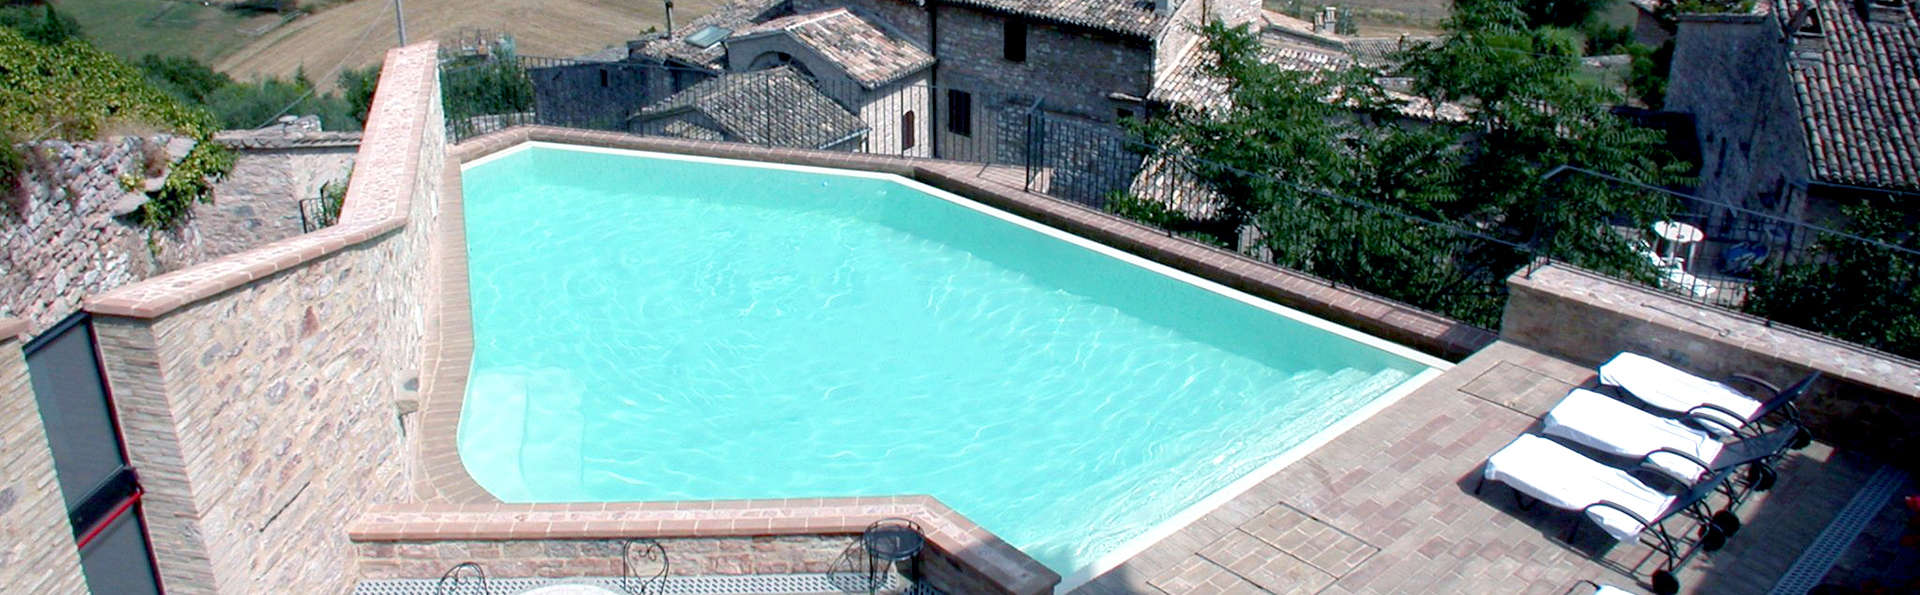 La Bastiglia - Edit_Pool23.jpg